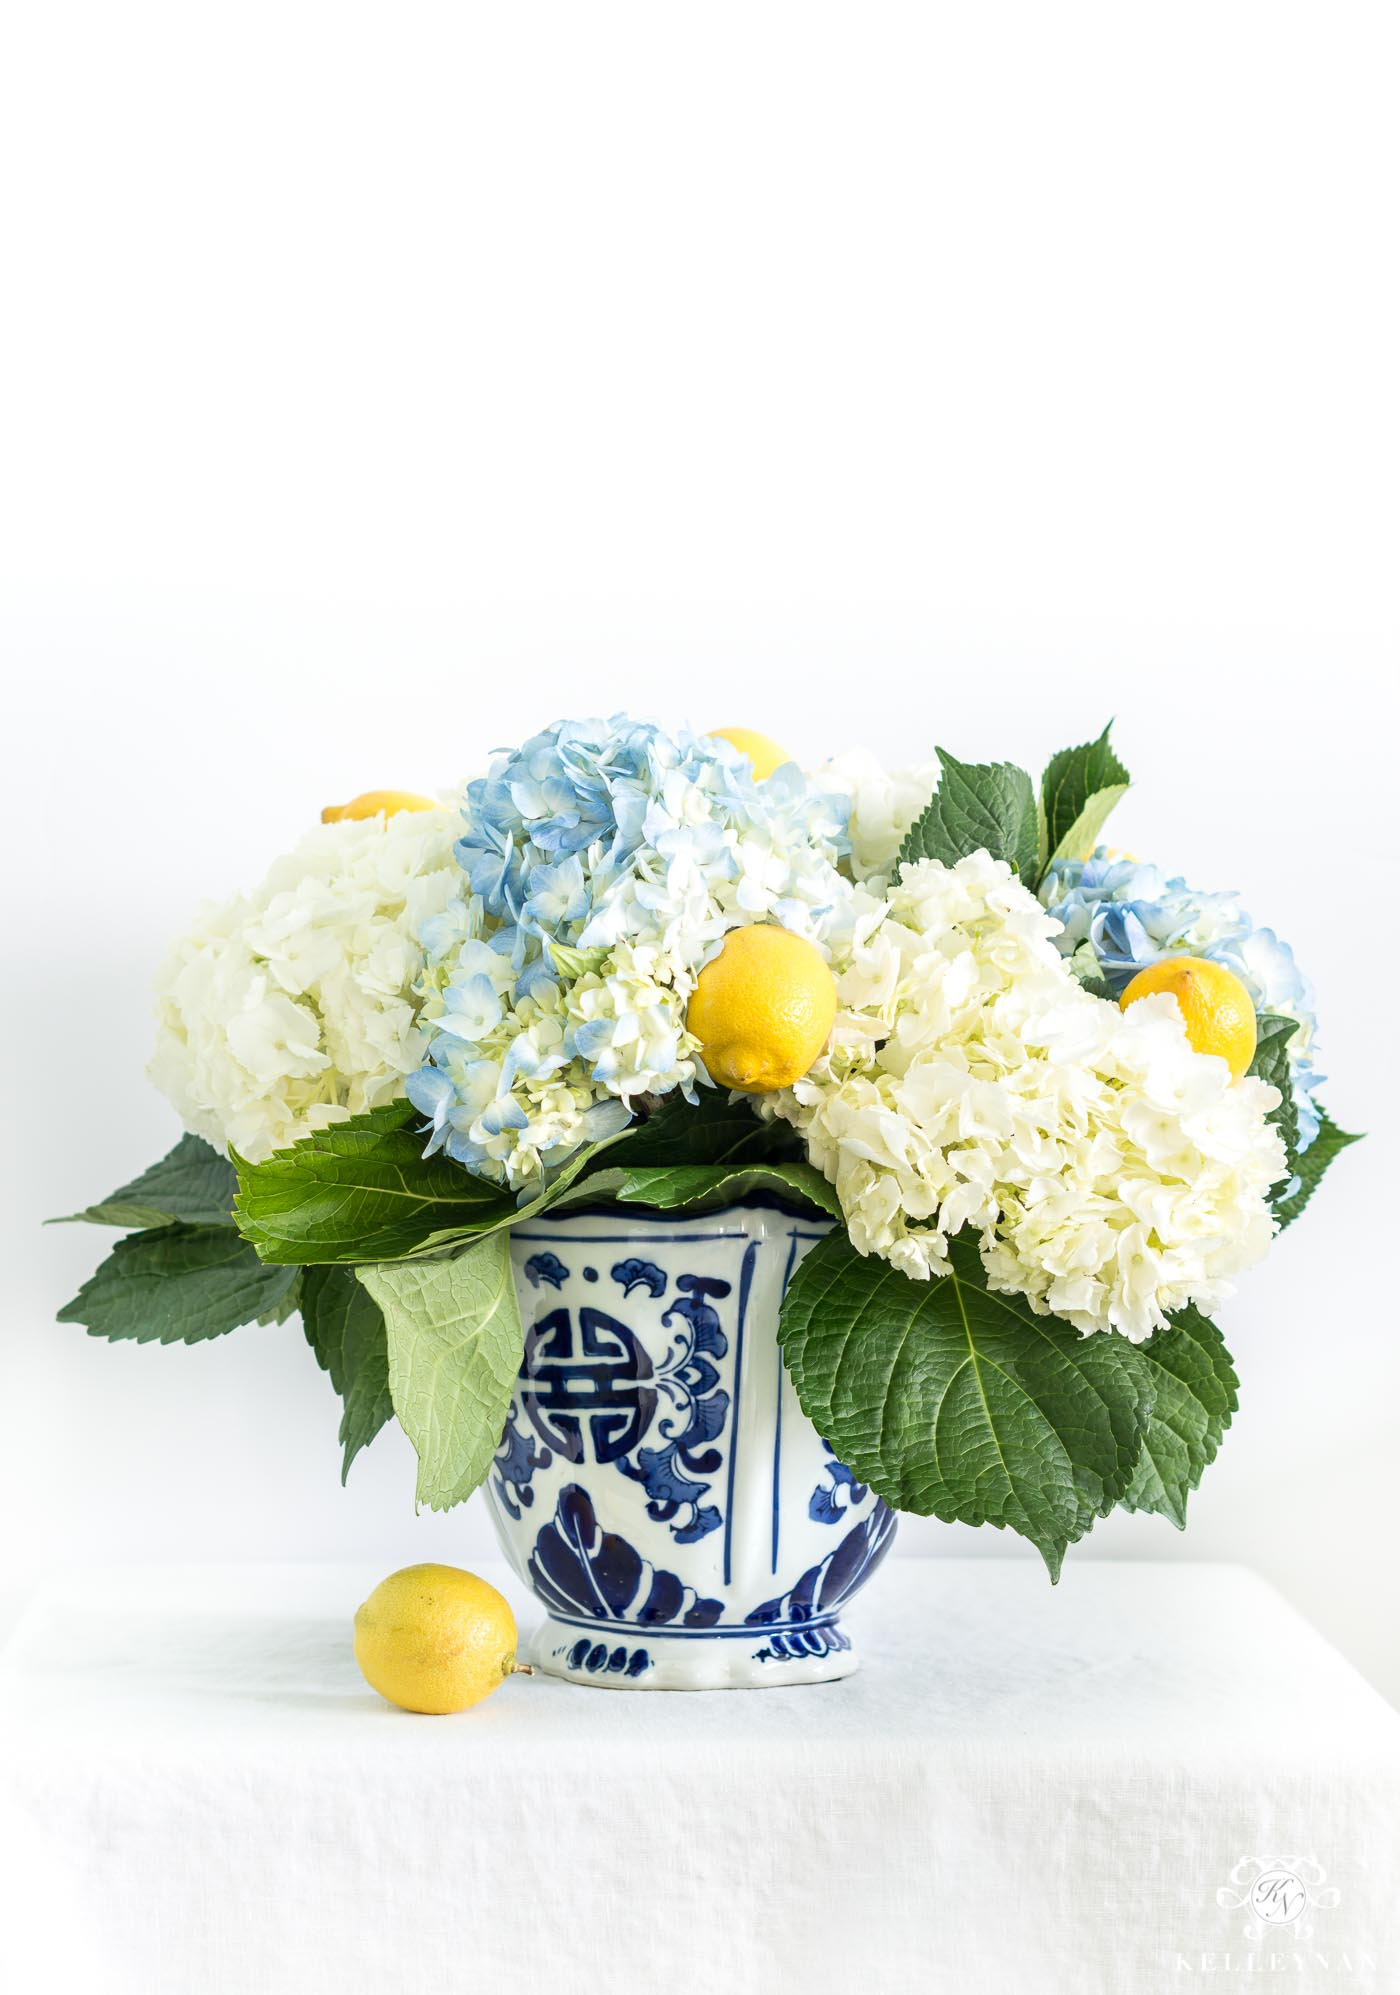 Six Ideas For Fruit And Flower Arrangements With Combinations To Create A Stunning Centerpiece Kelley Nan